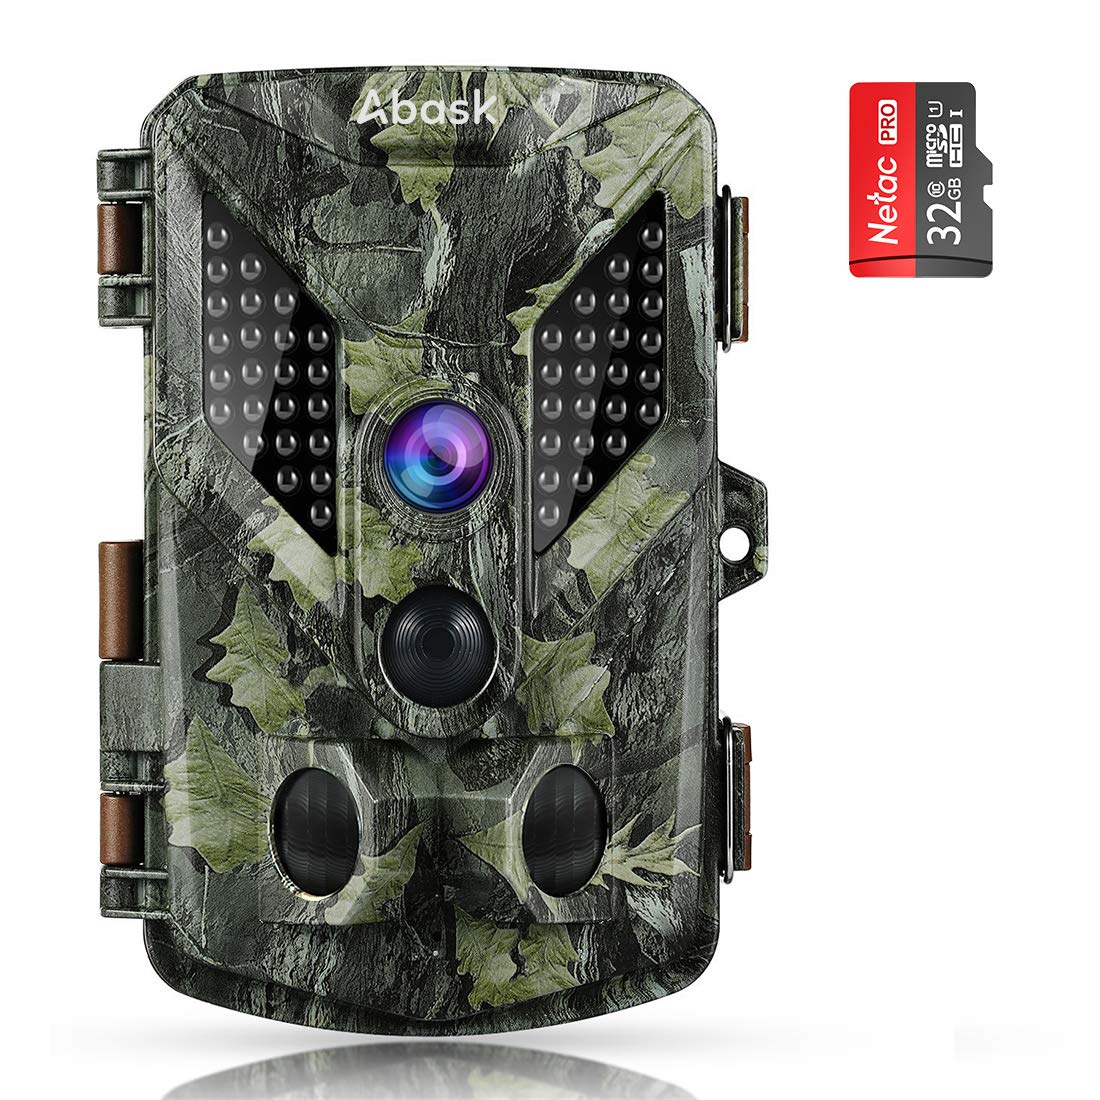 Abask Trail Cameras 16MP 1080P Full HD Hunting Camera With Night Vision Motion Activated, Game Camera 940nm 44 IR Leds Wildlife Trail Surveillance Cam 2.4'' LCD for Home, Property, Wildlife, Farm-Brown by ABASK